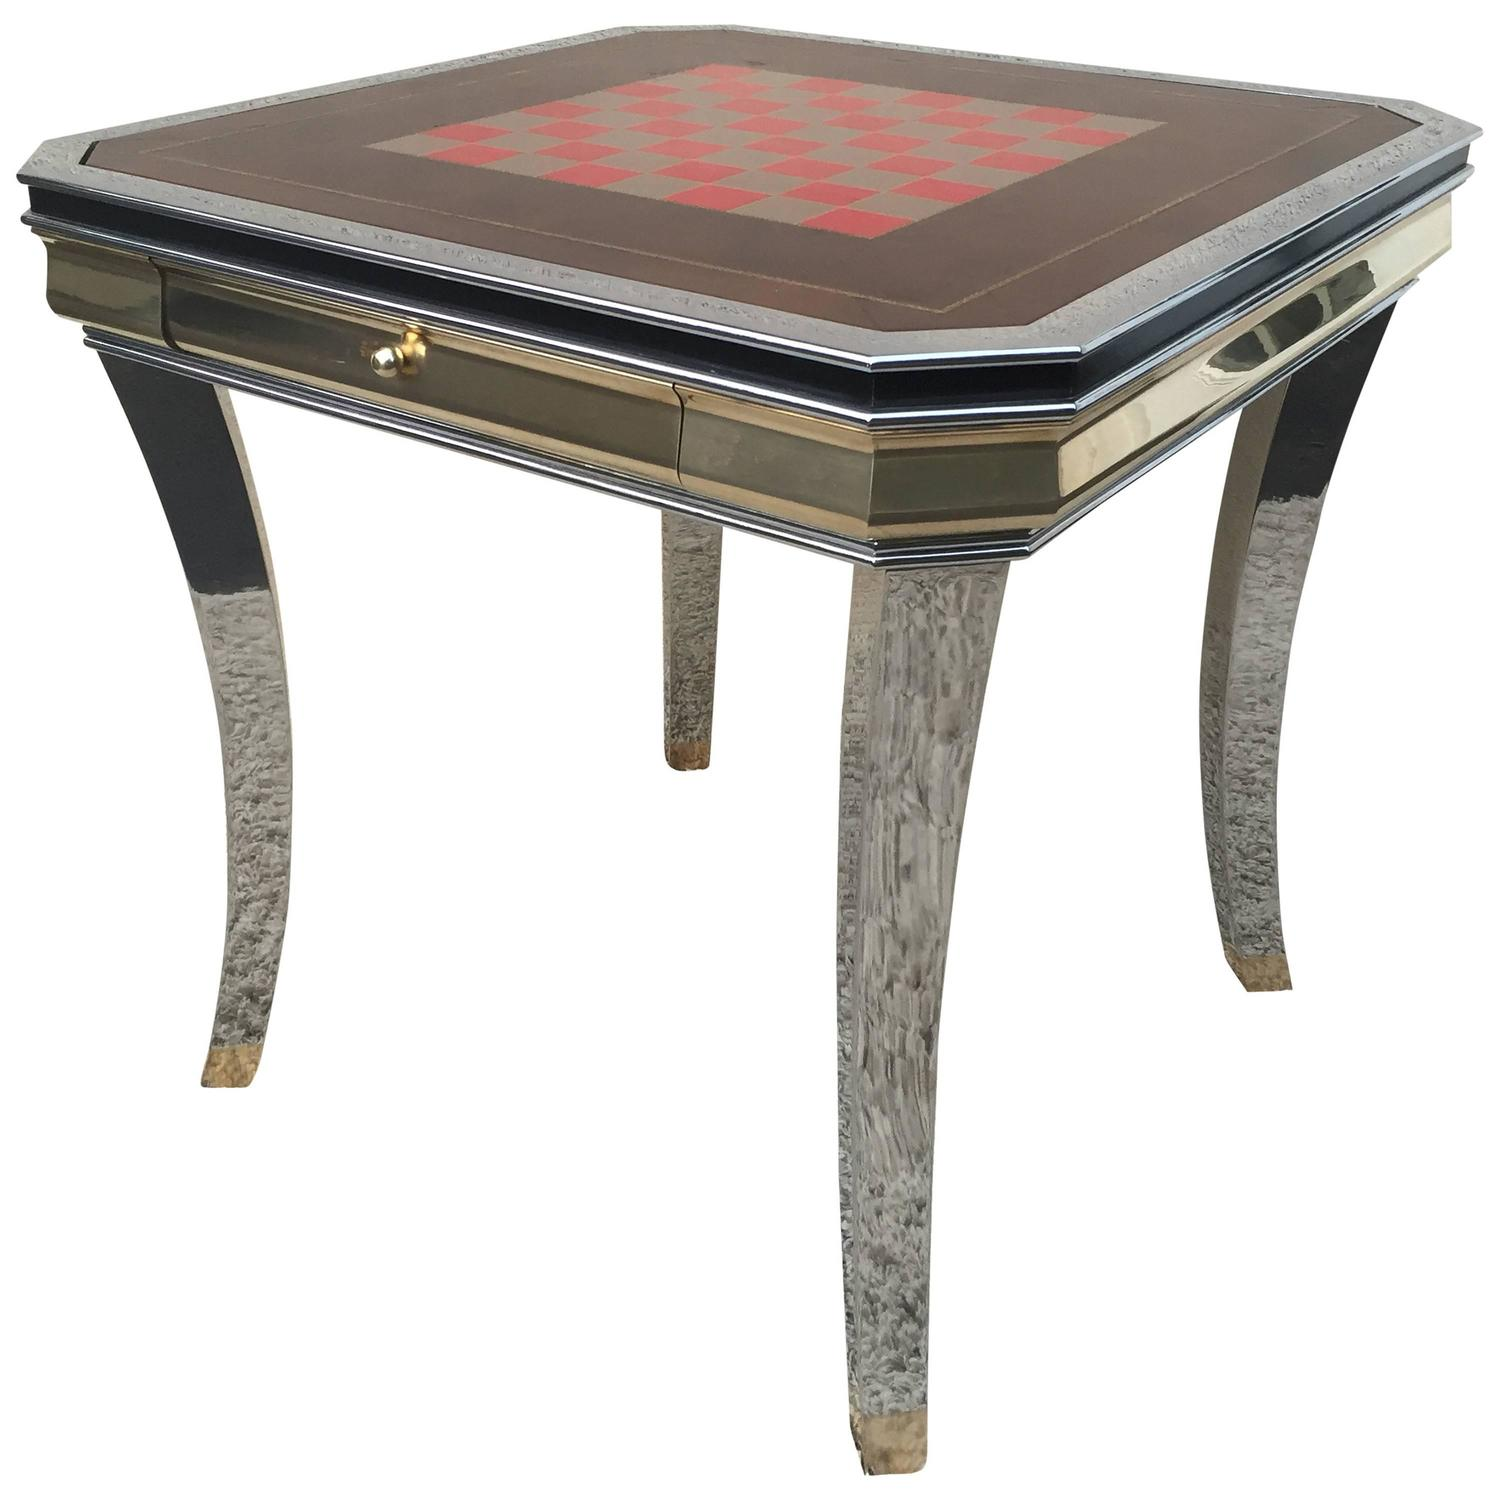 Willy rizzo style game table at 1stdibs for Table willy rizzo